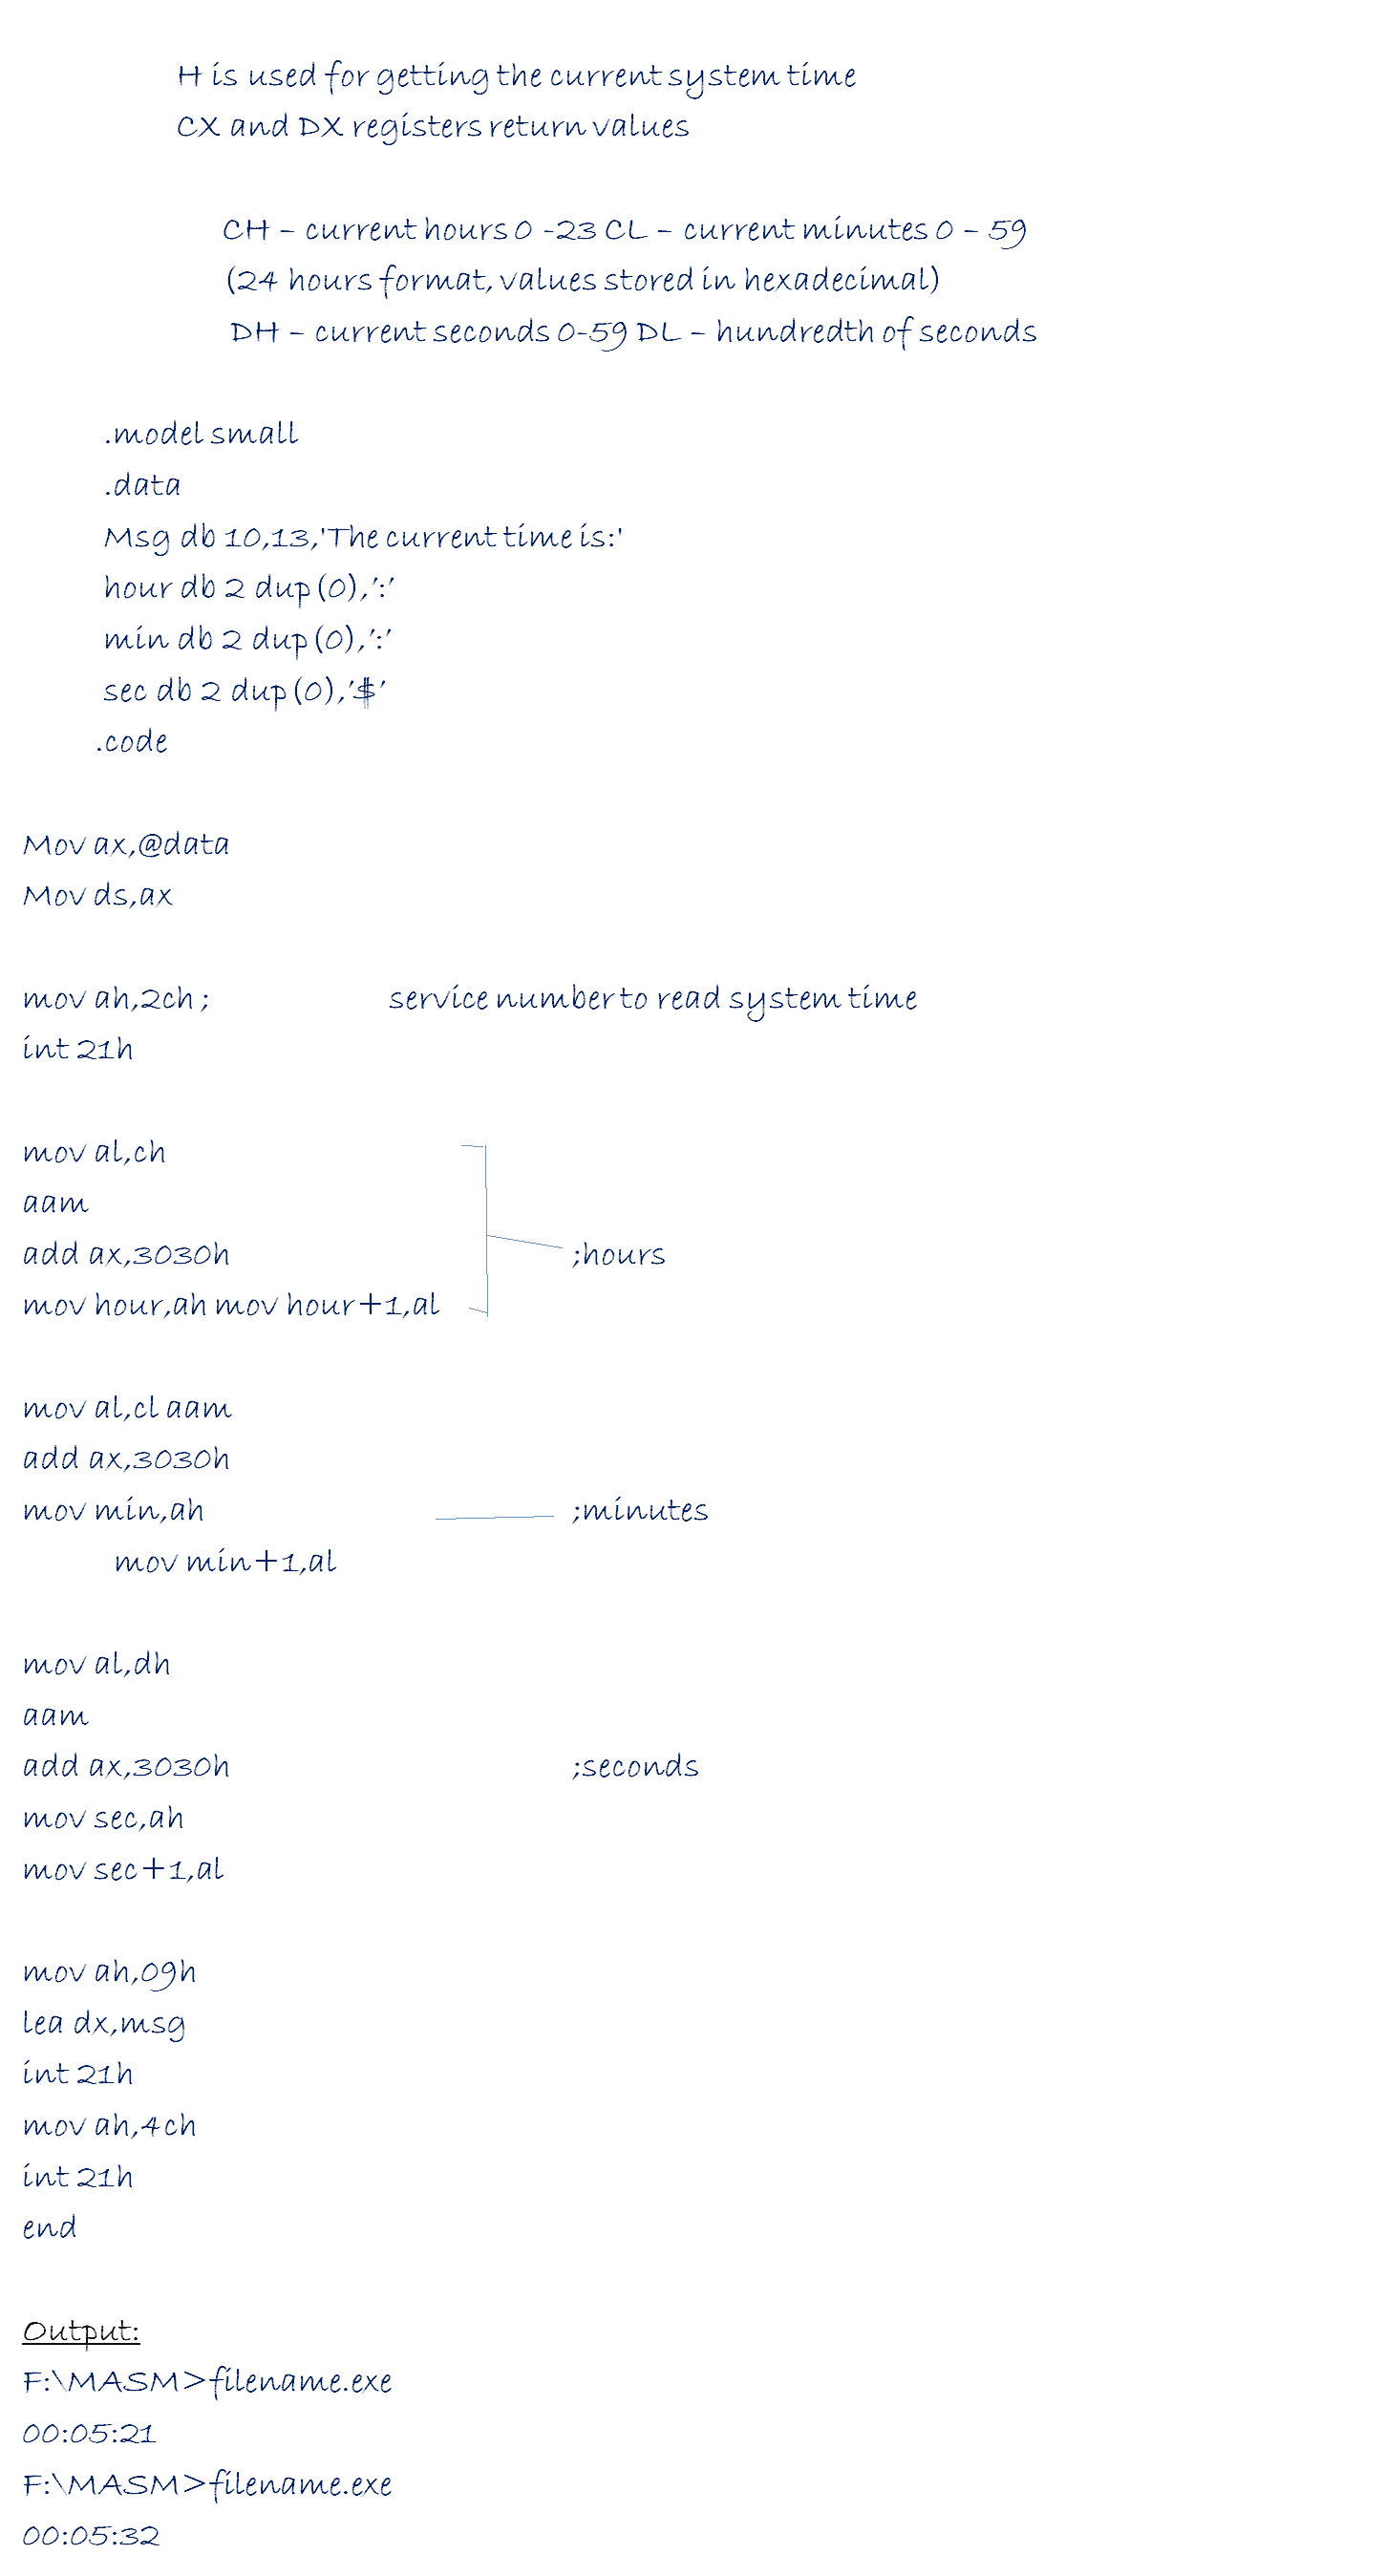 Write a program in assembly language to read the current